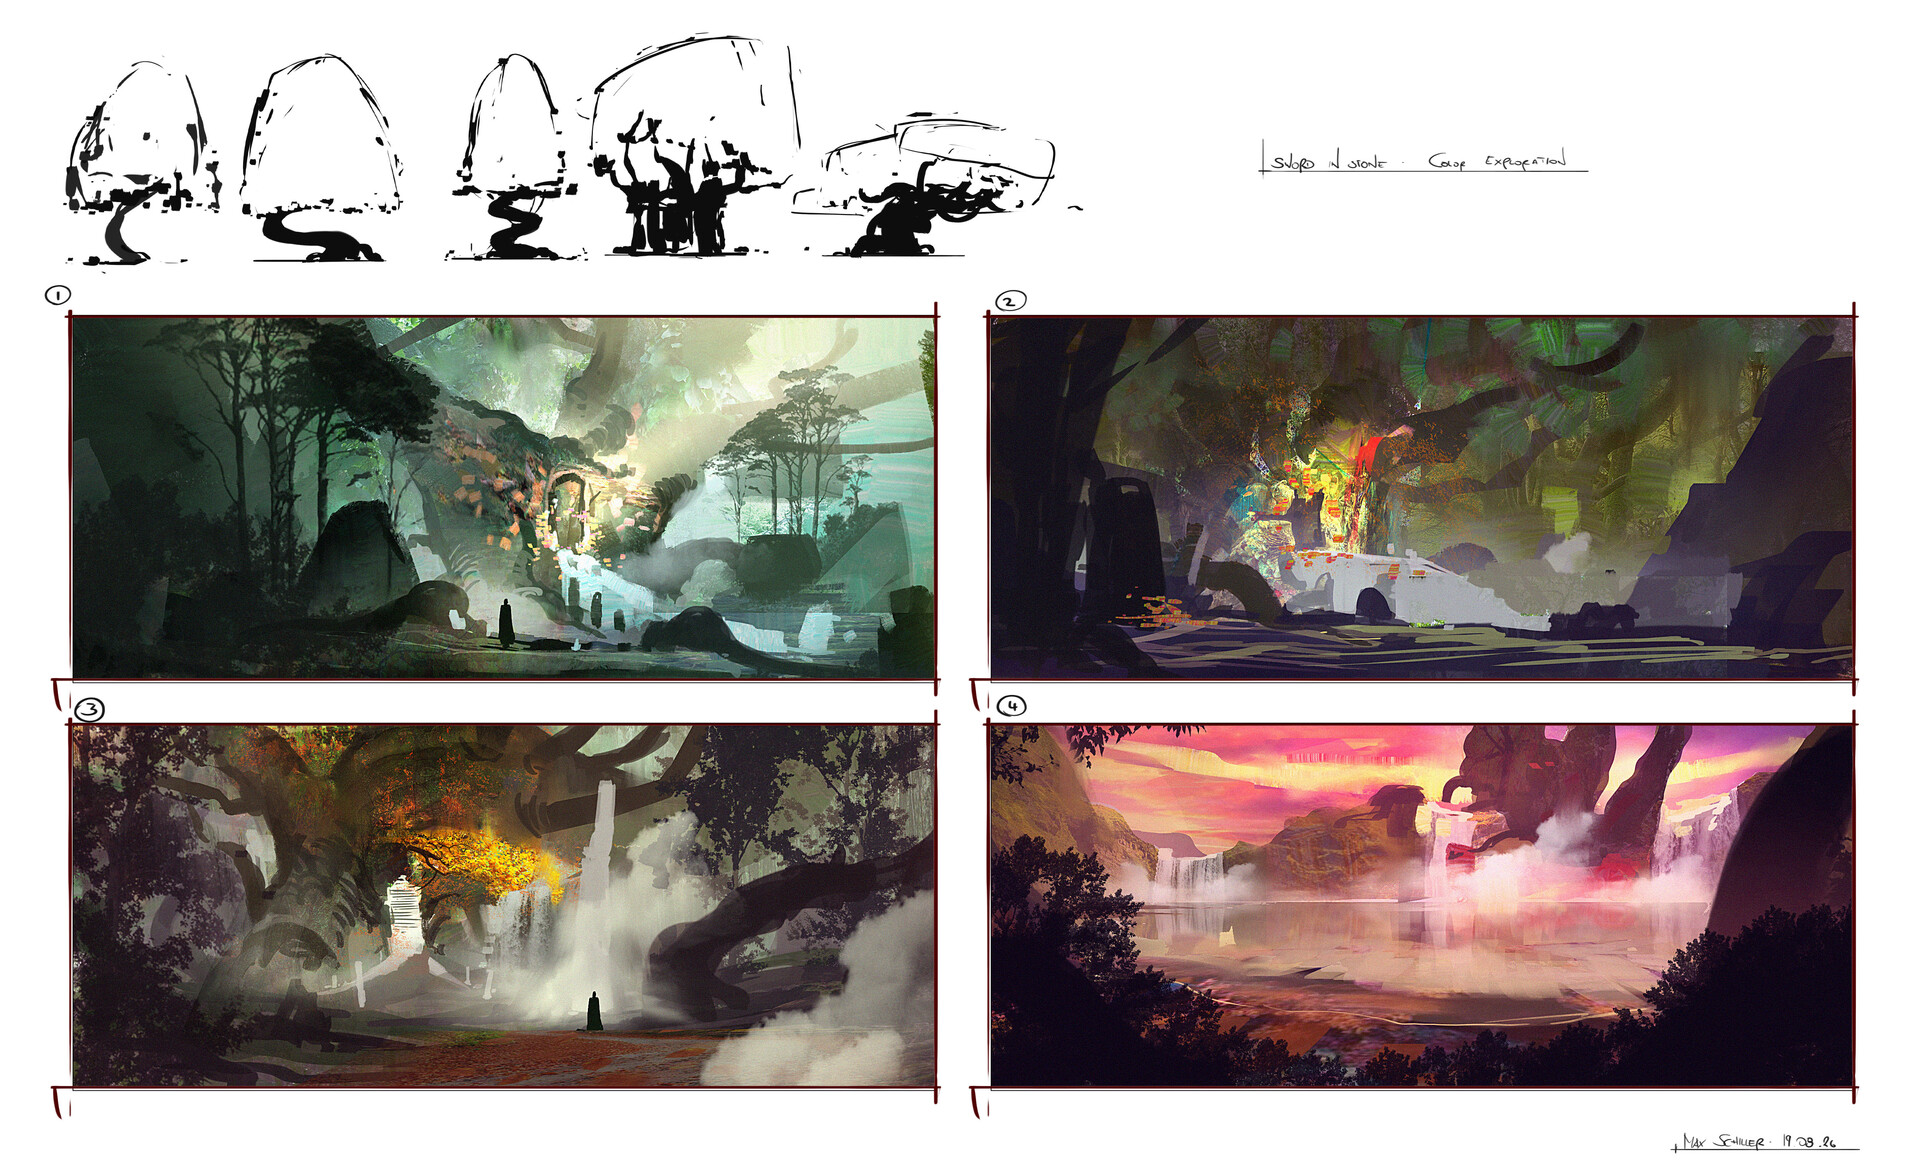 First color sketches to explore the colors and mood.